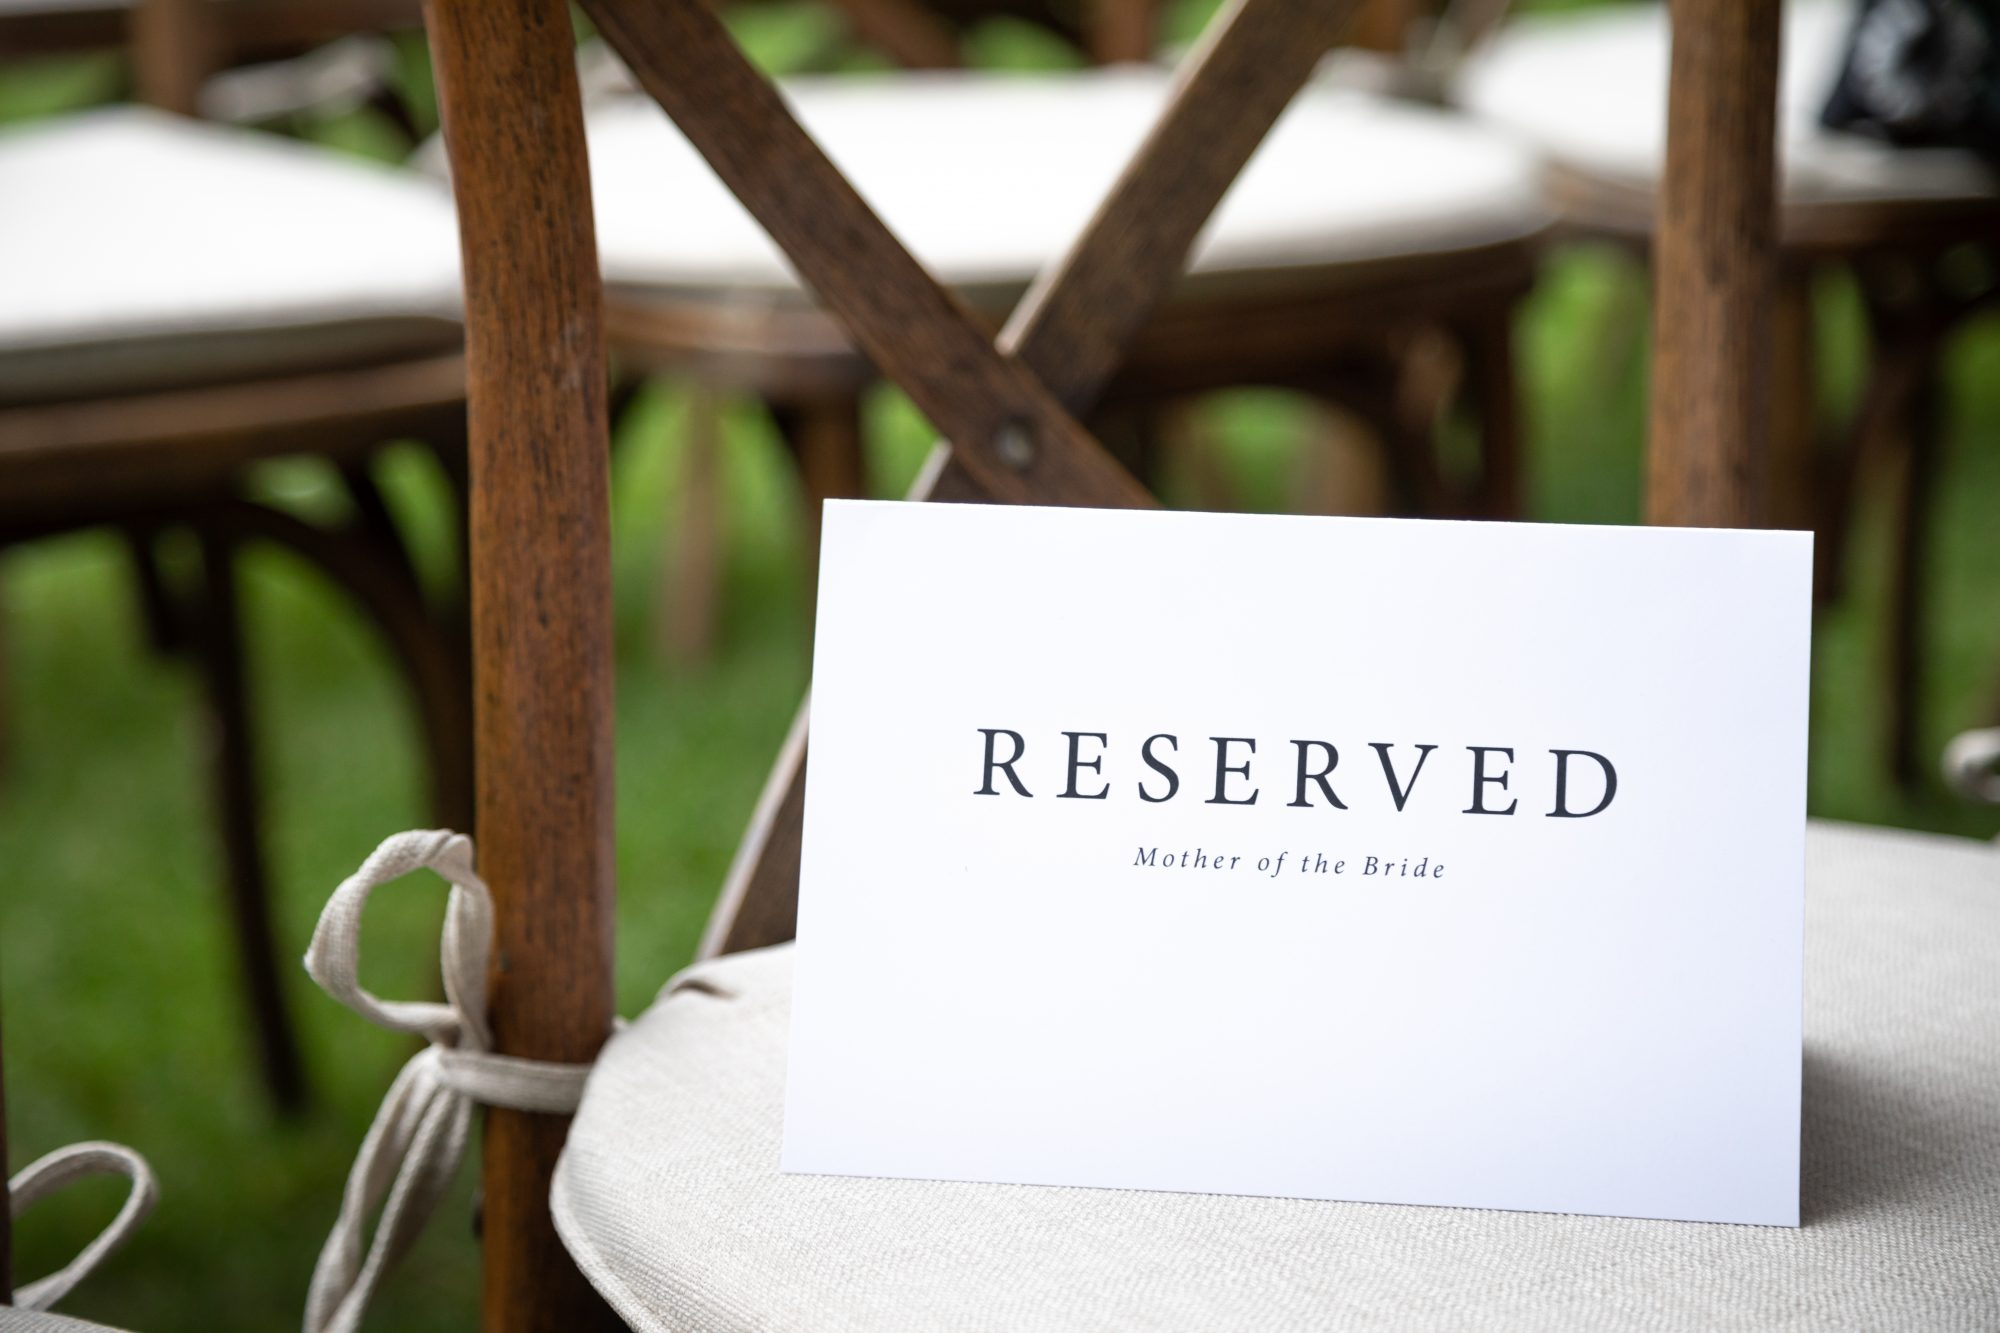 reserved seat card at wedding